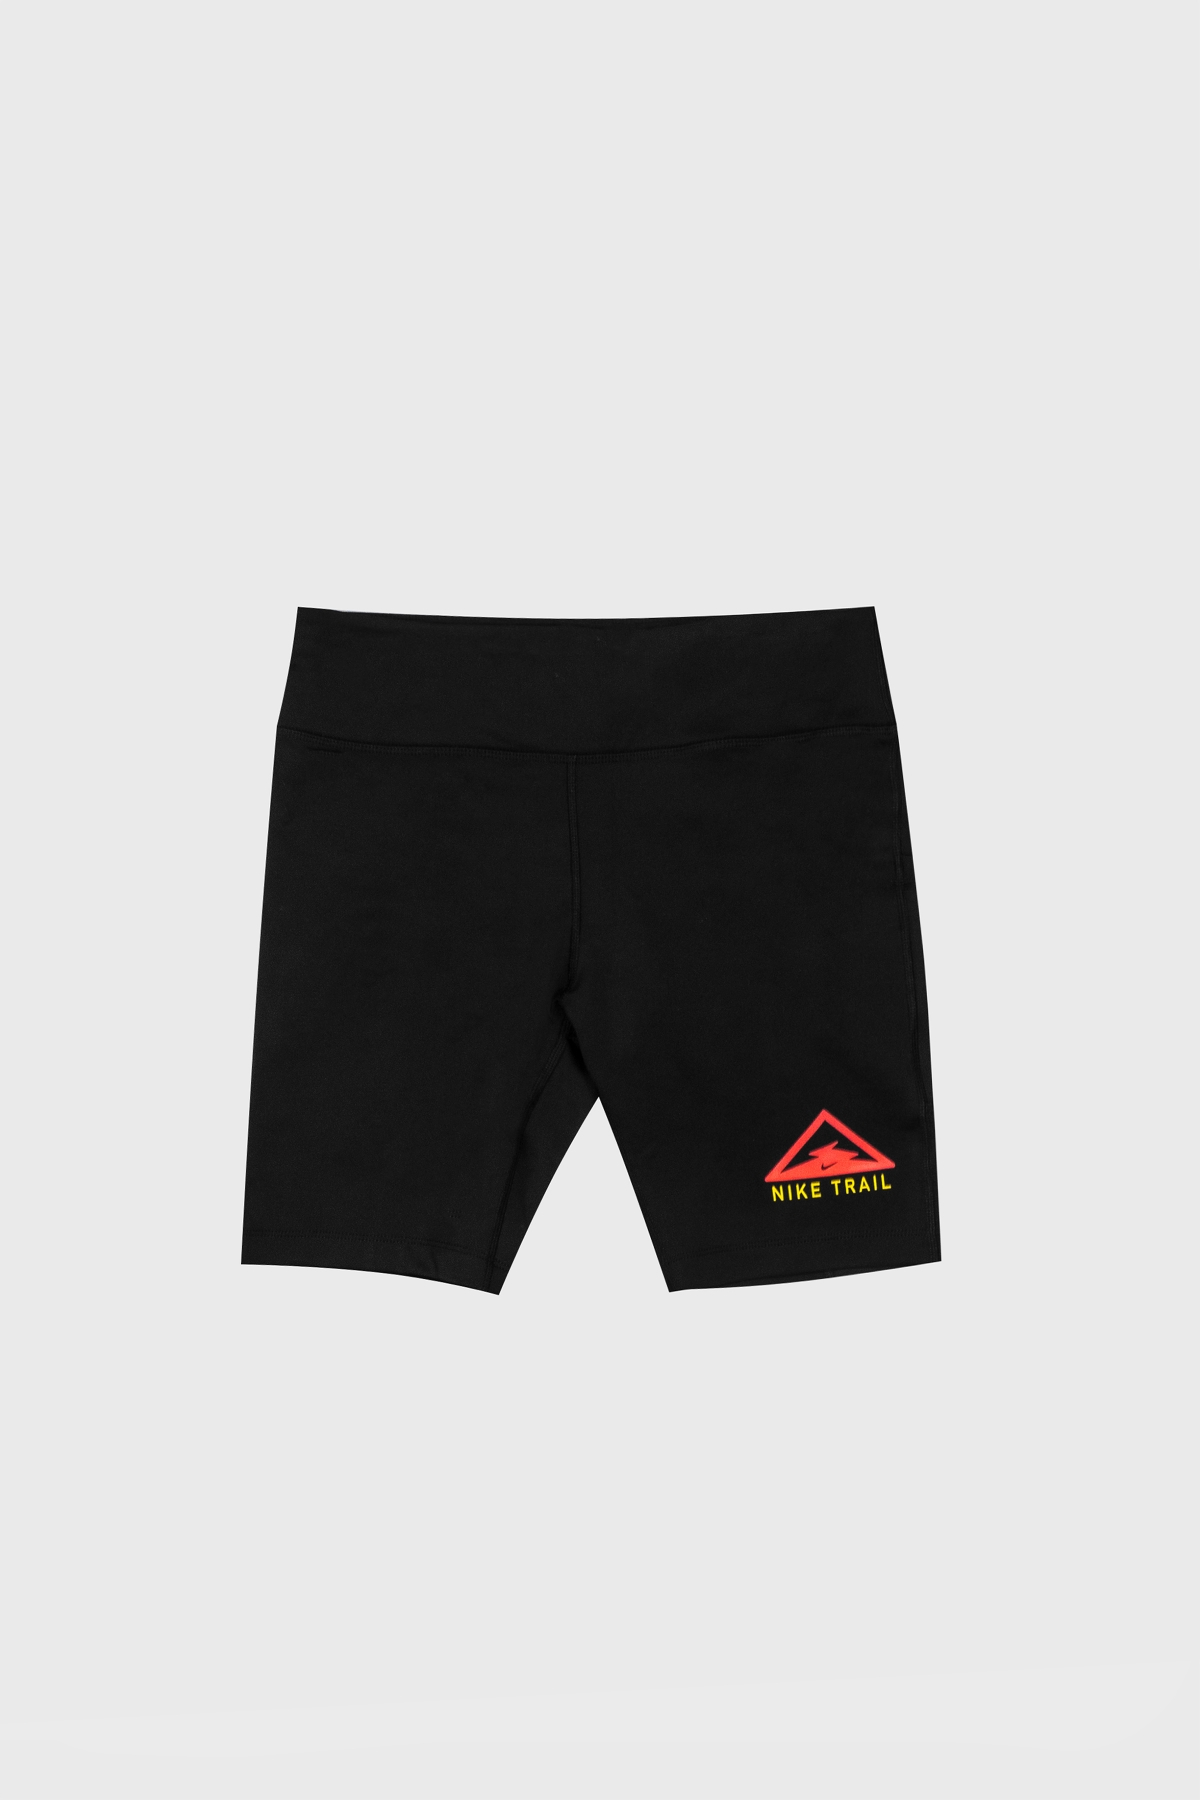 Nike W - SHORT FAST TRAIL - BLACK